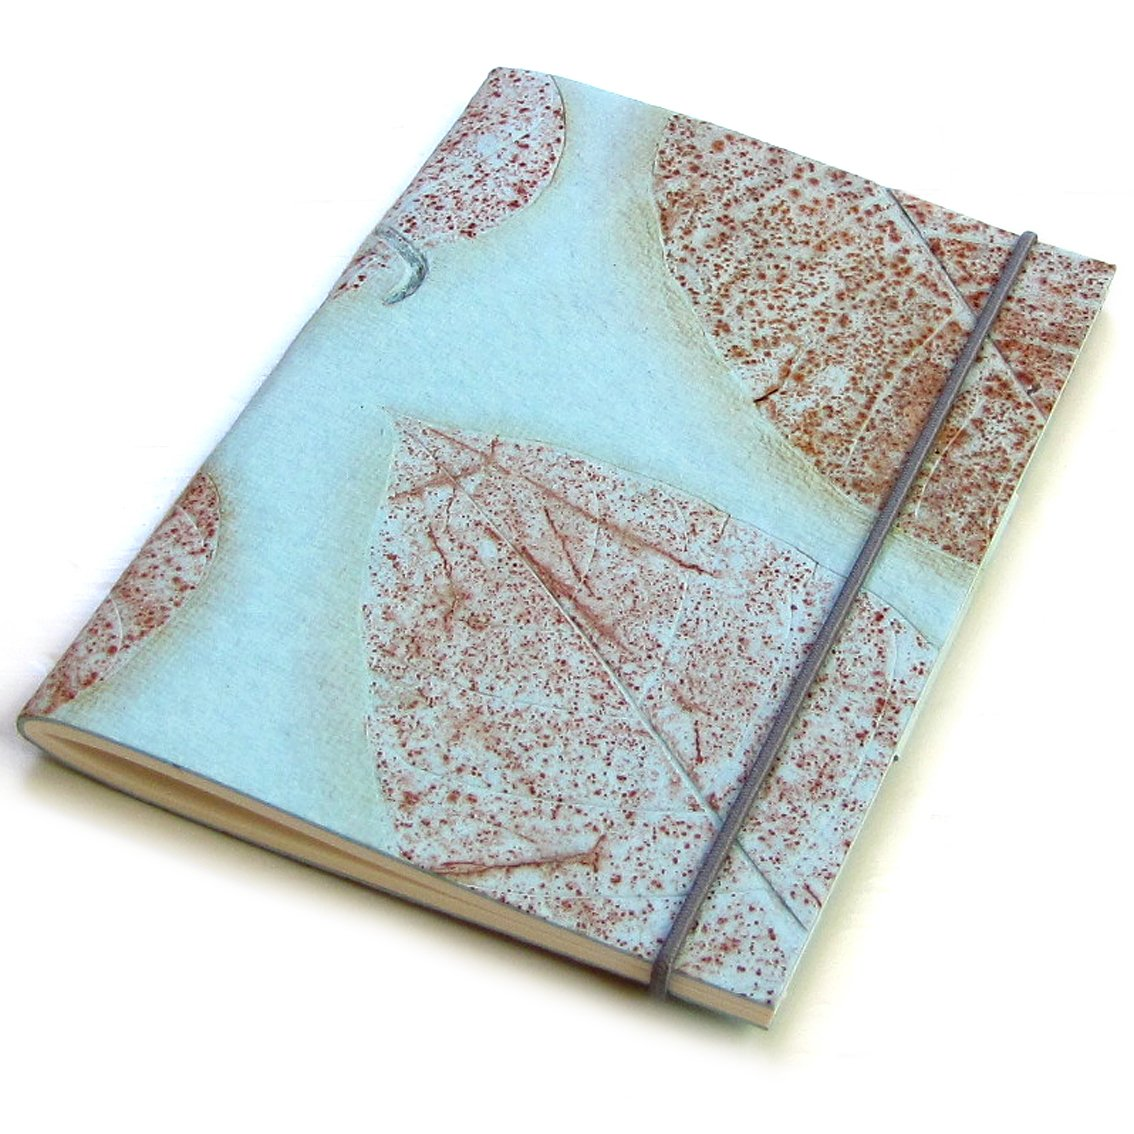 Journal recipes guest book sketching notebook handmade elastic light blue 5x7 natural leaf paper